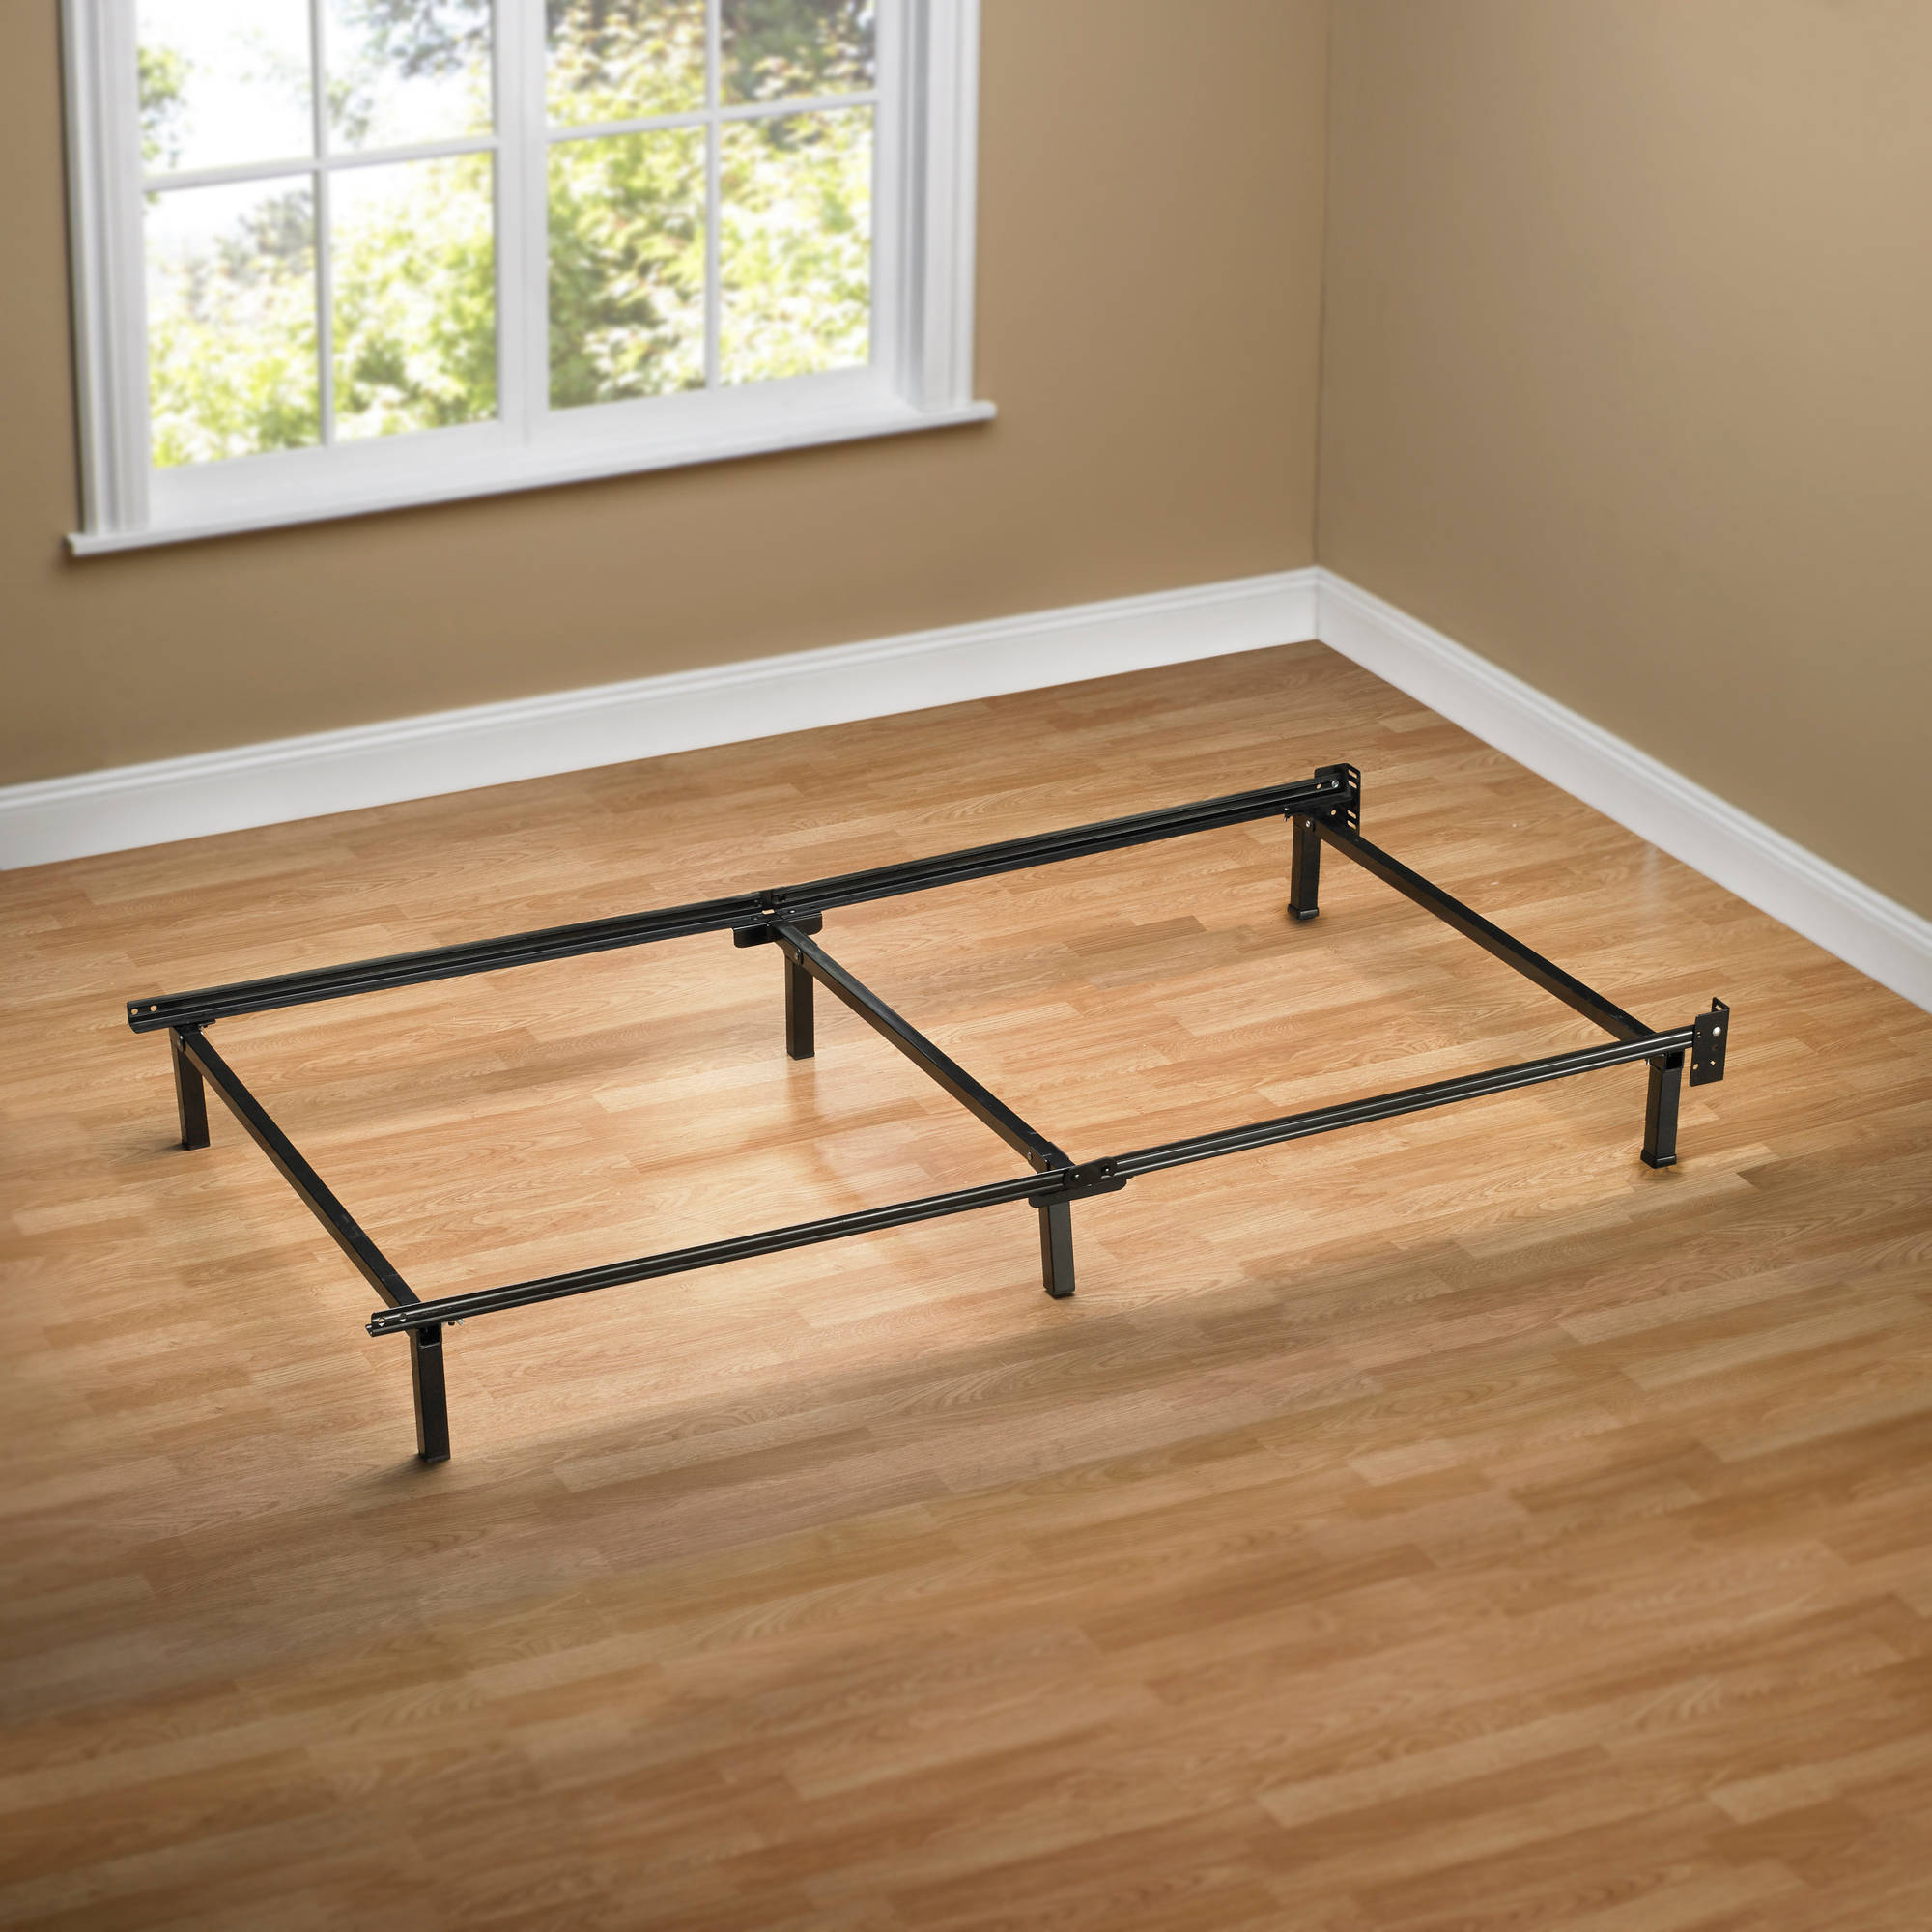 Sleep Revolution Compack Steel Bed Frame